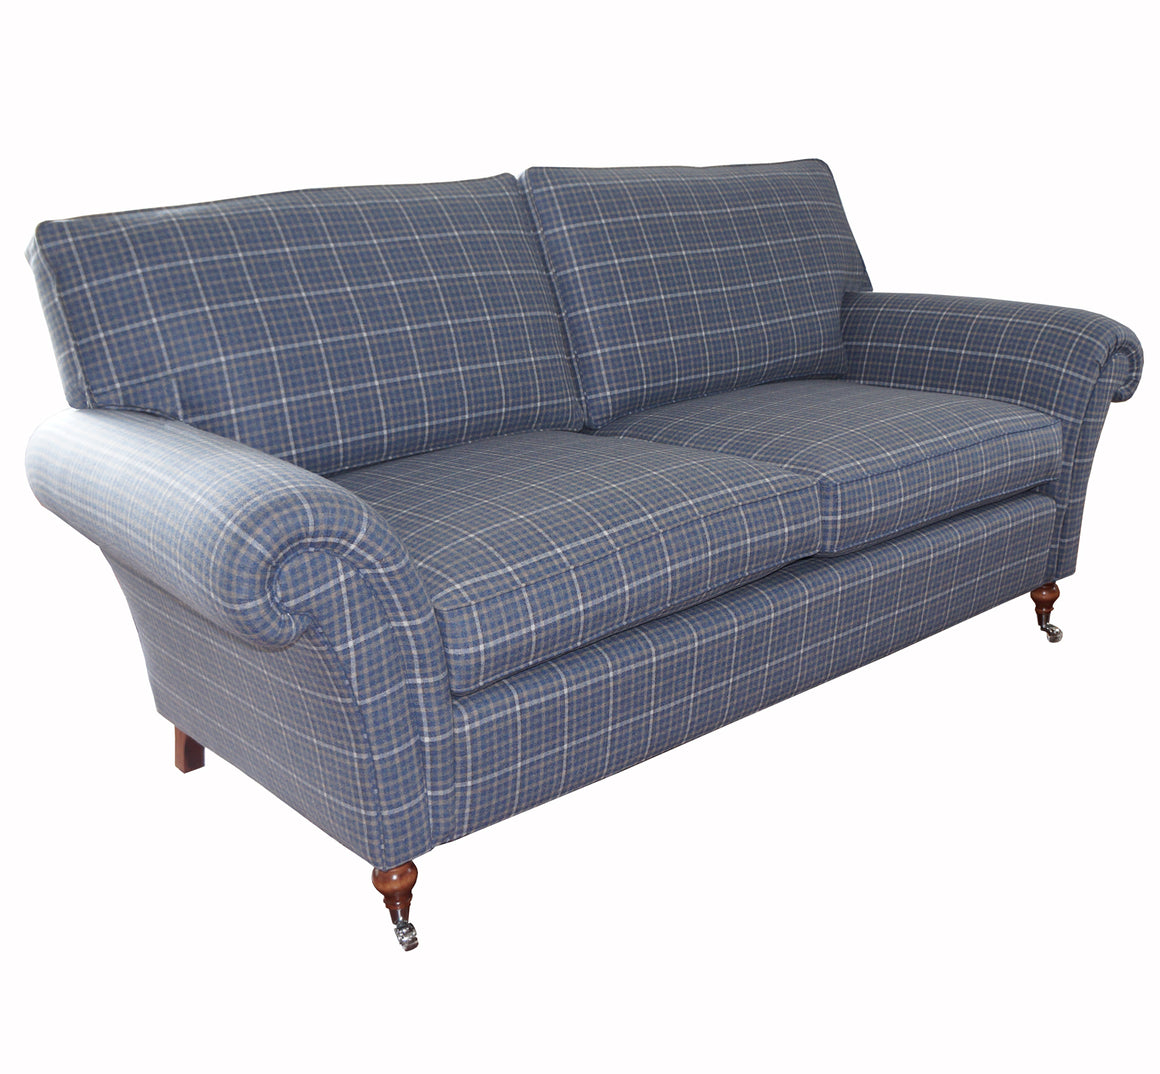 Henley Sofas and chairs in Linwood Iona HALF PRICE TO ORDER